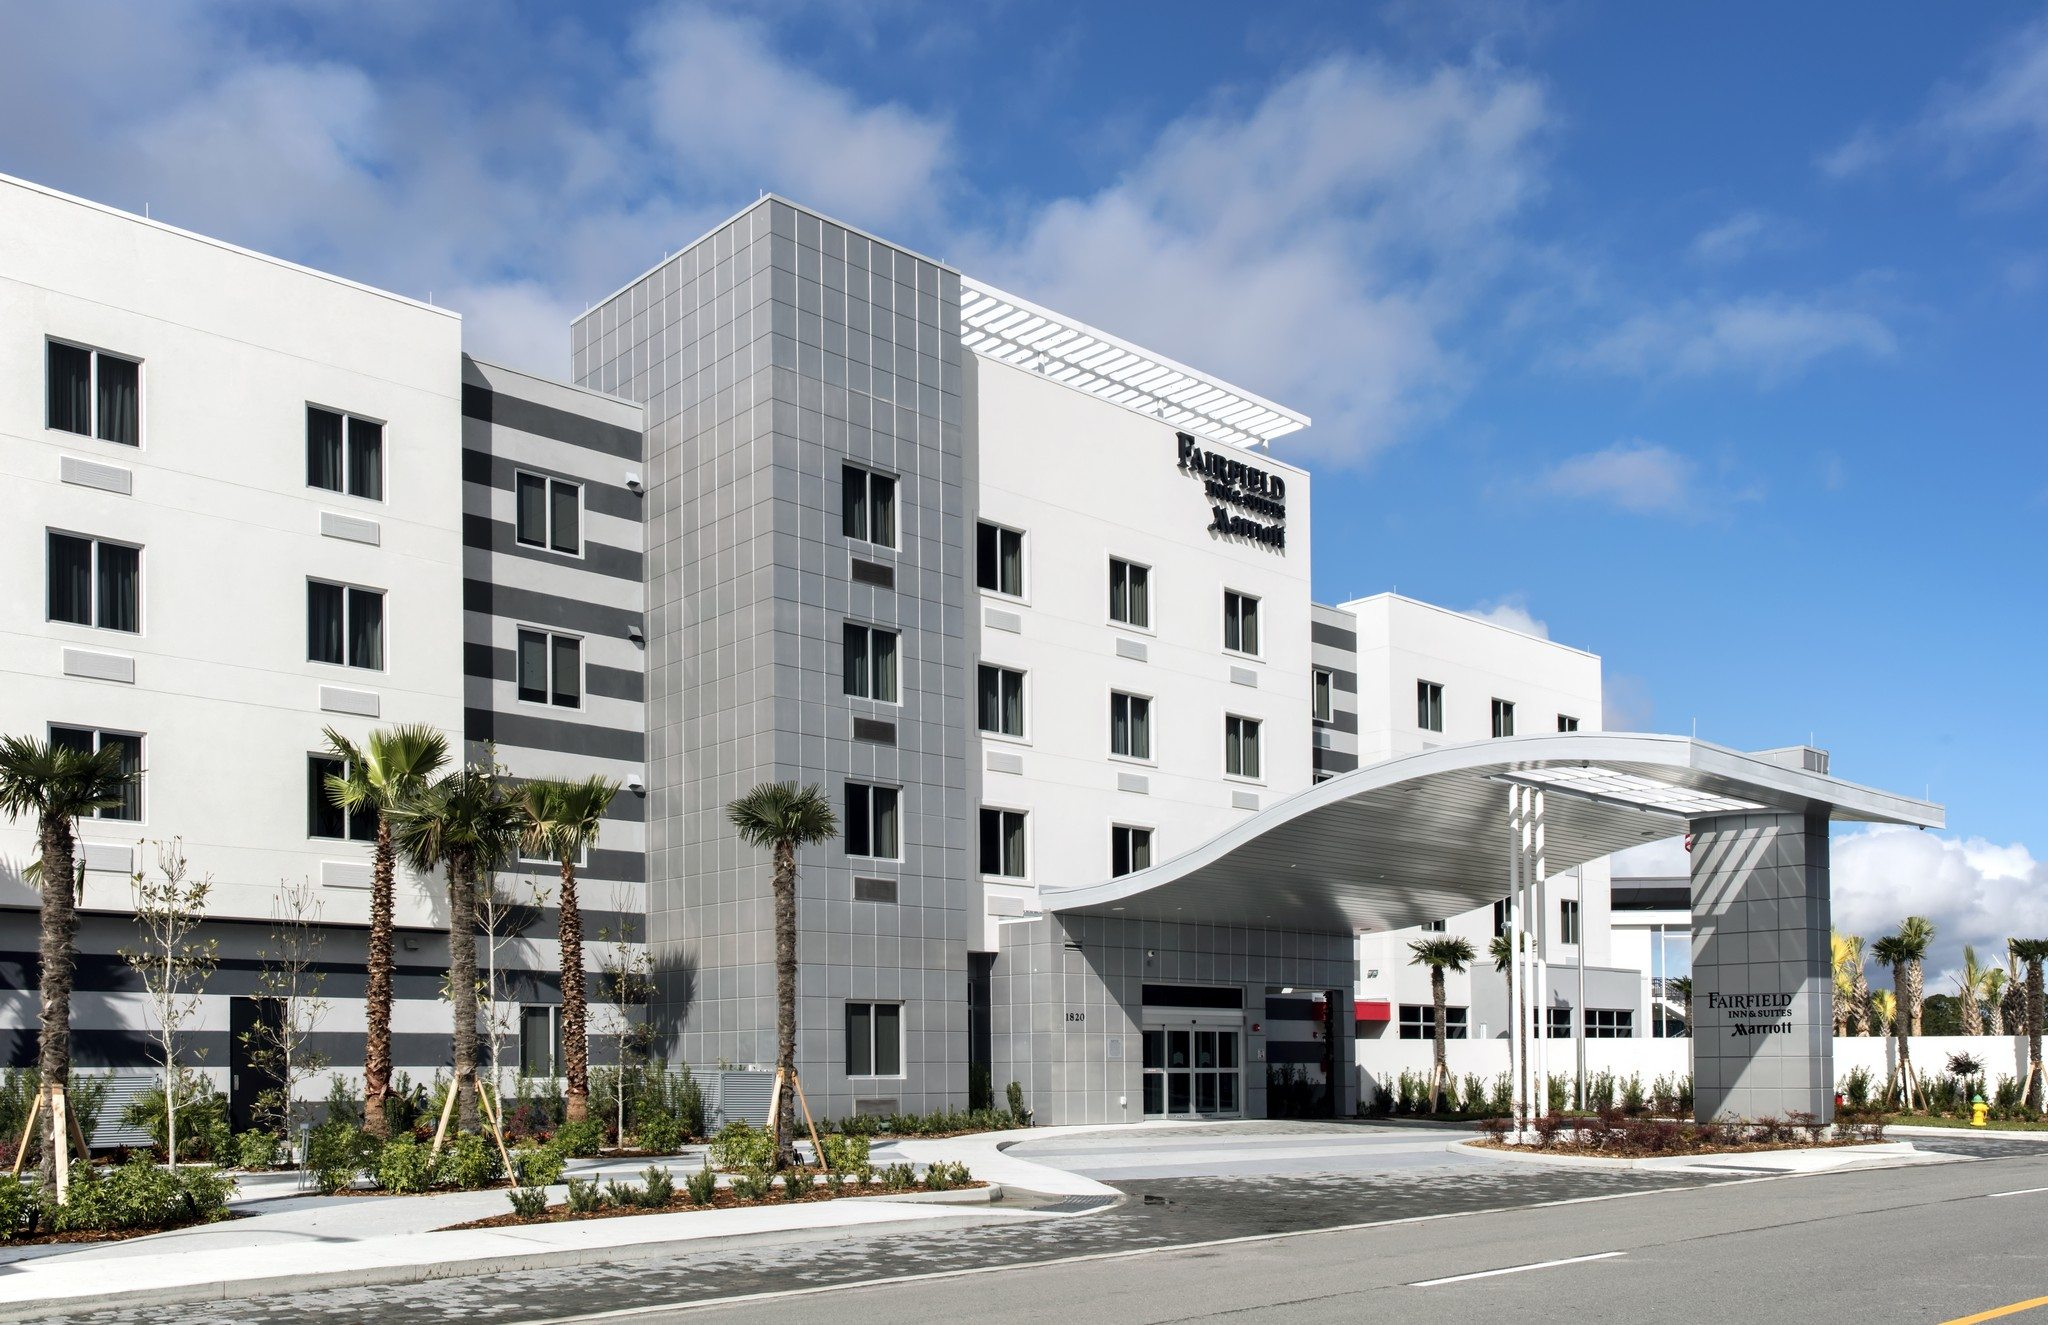 Fairfield Inn & Suites Daytona Beach Speedway/Airport